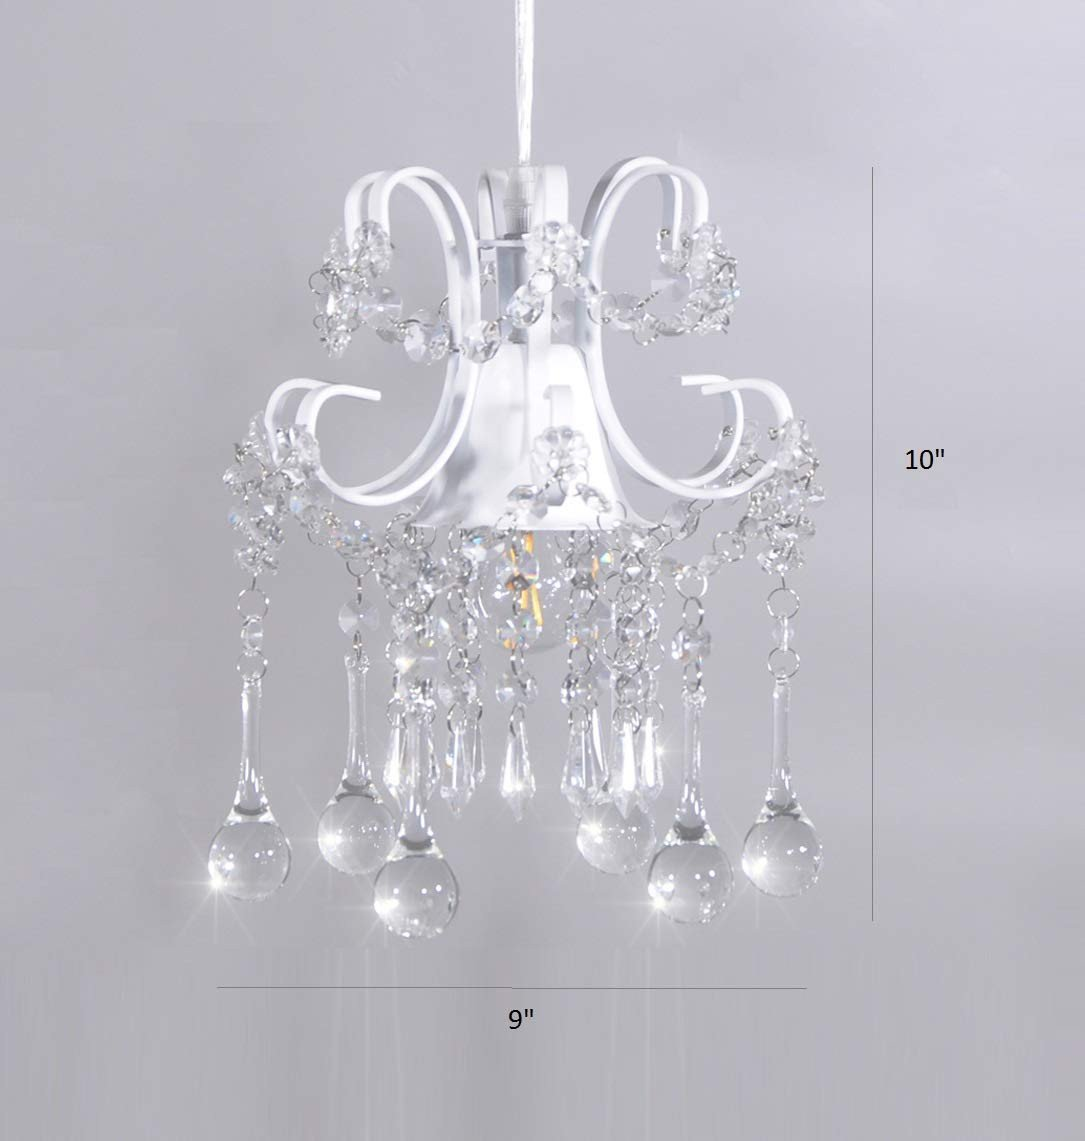 Girls Bedroom Ceiling Light Unique Mini Style Crystal Chandelier Pendant Light White 1 Light